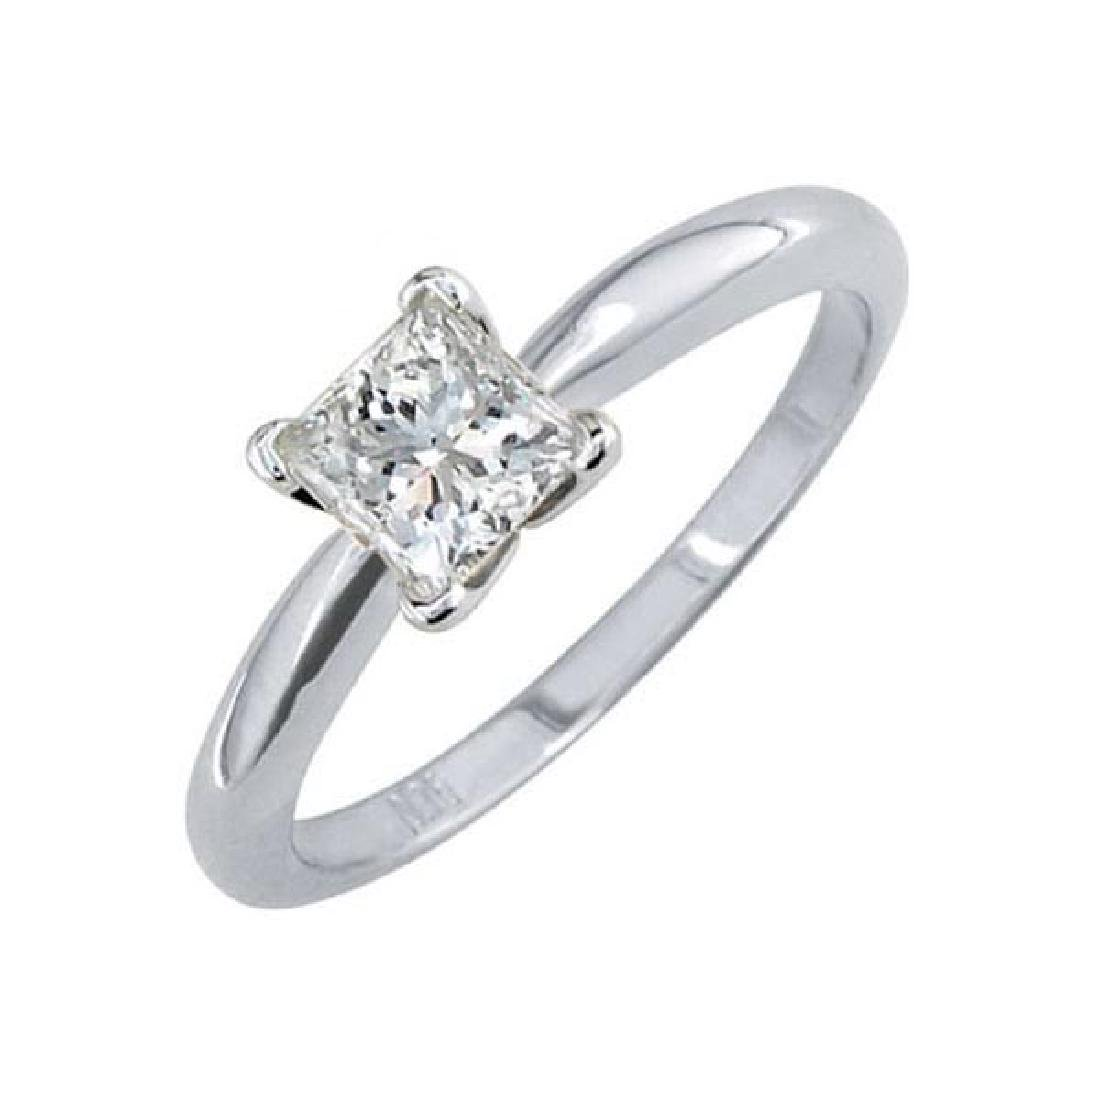 Certified 1.02 CTW Princess Diamond Solitaire 14k Ring